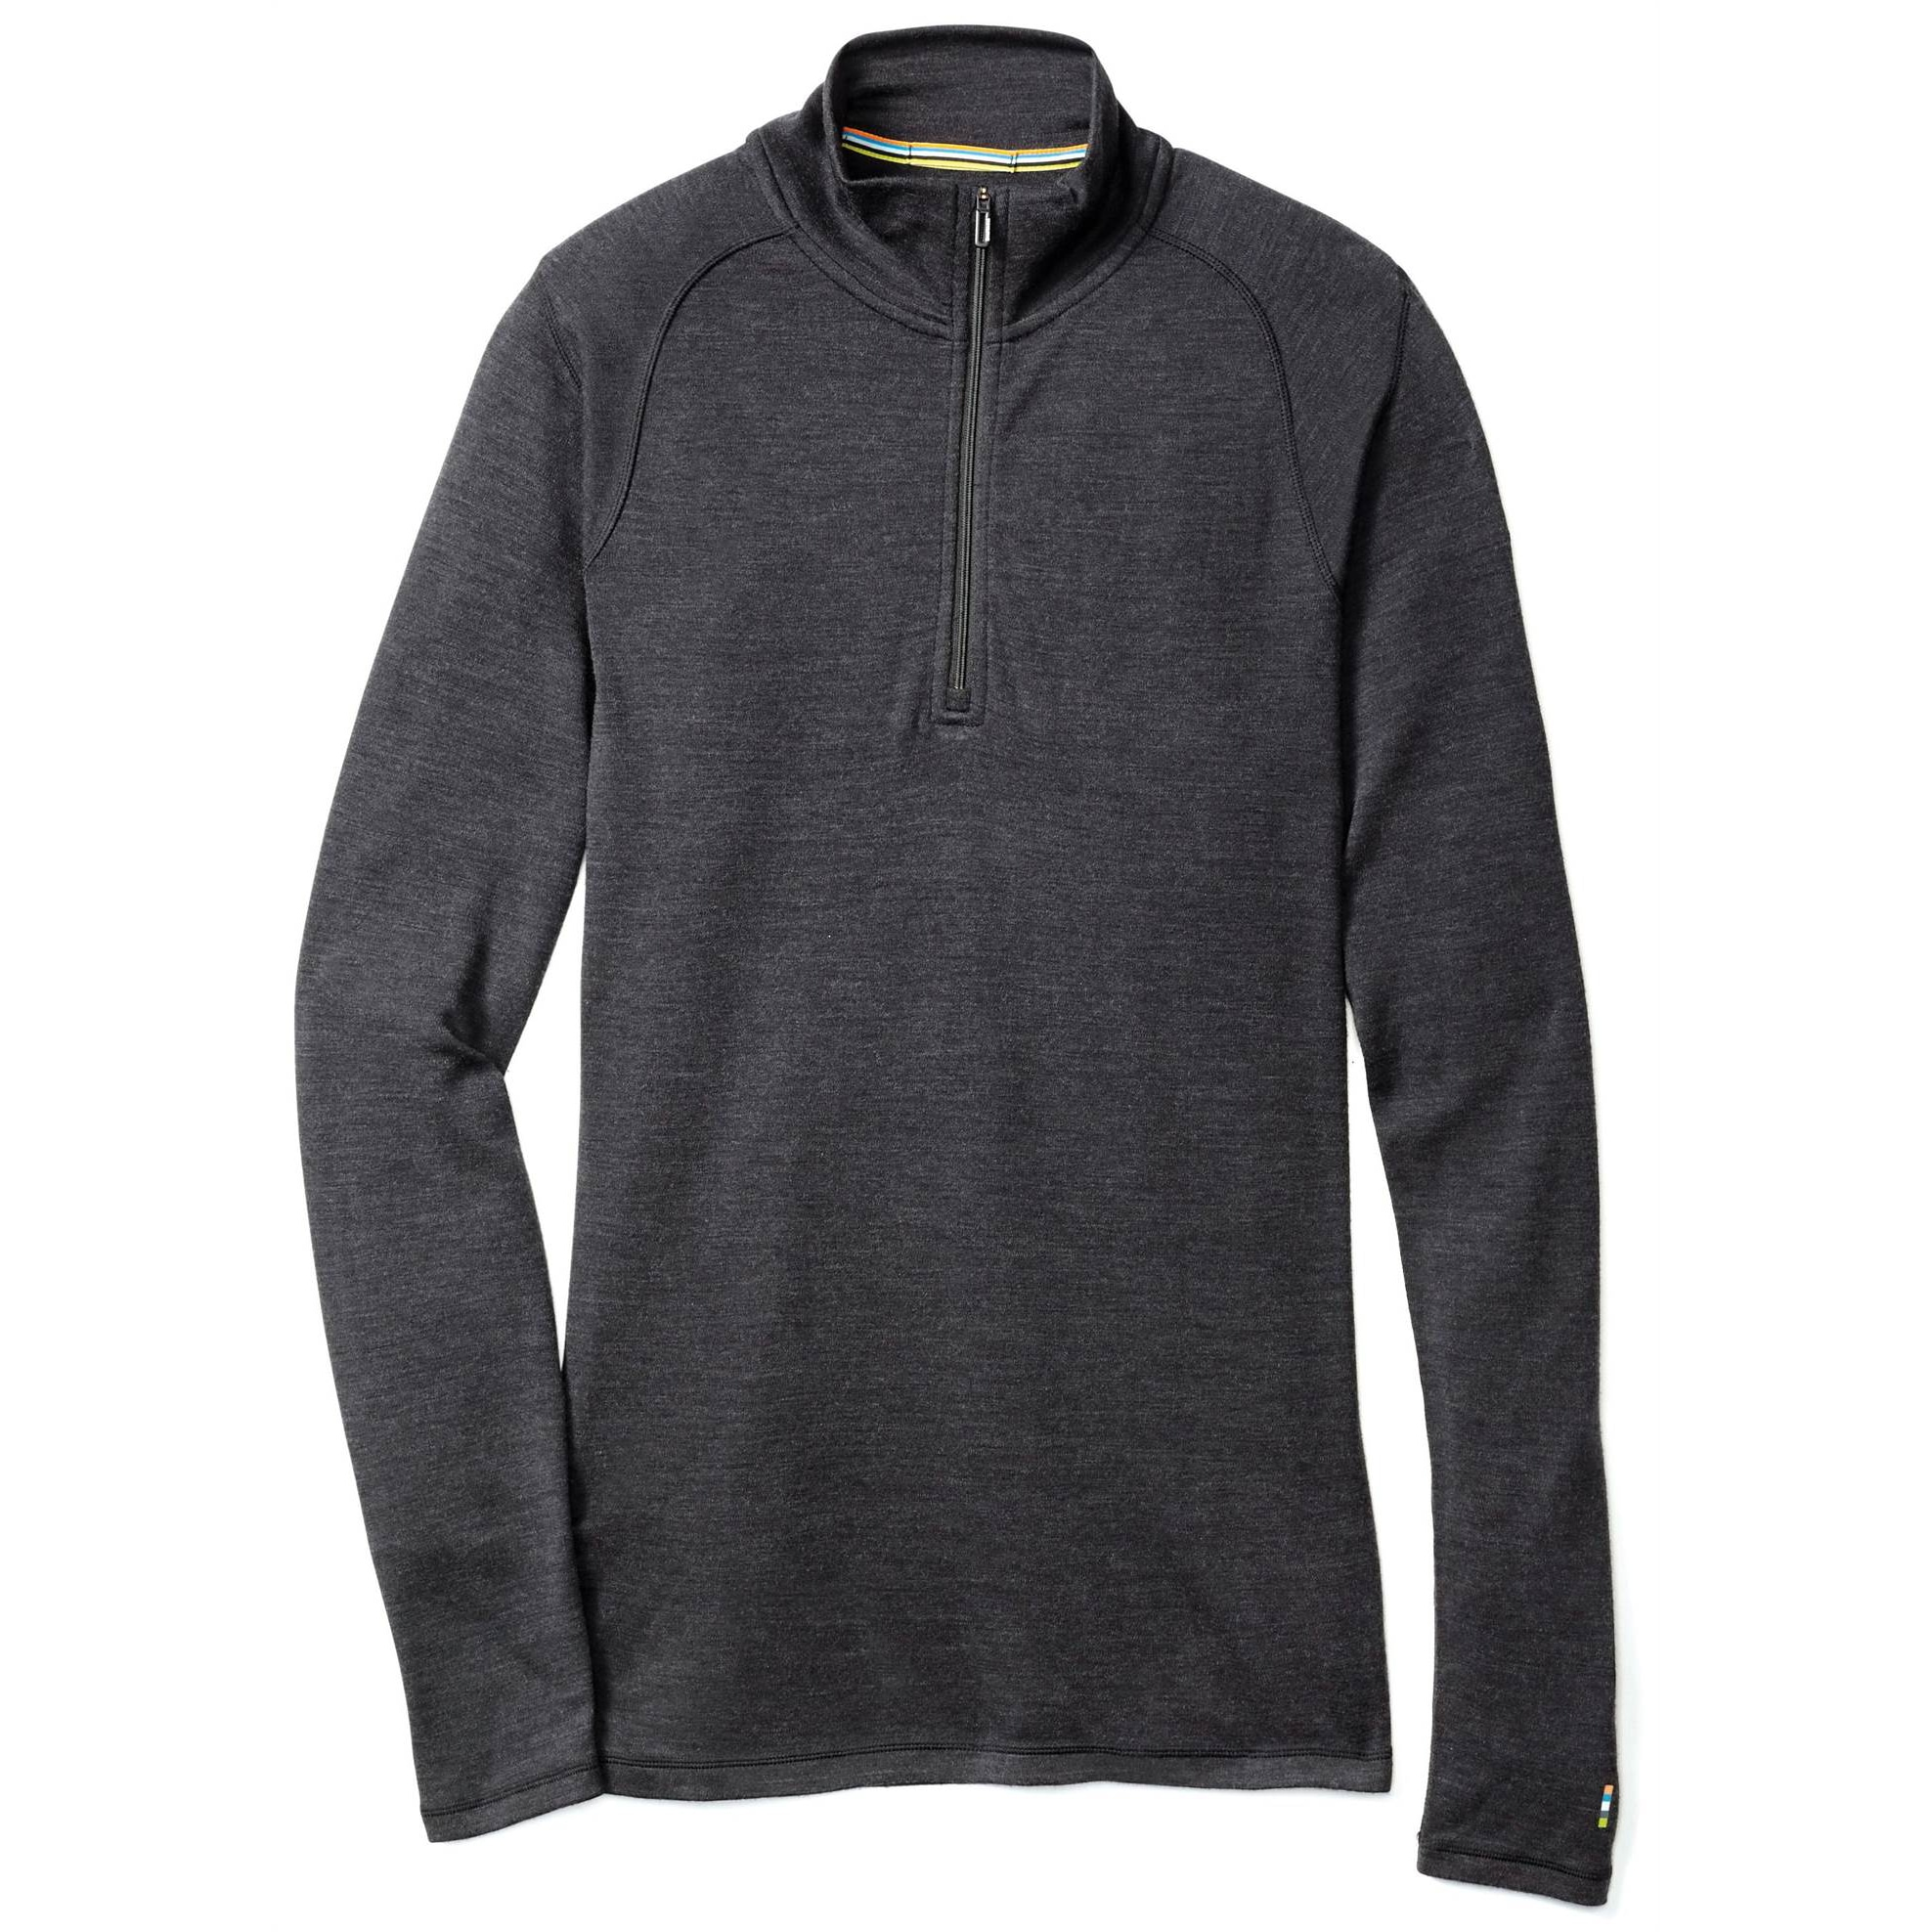 Merino 250 Baselayer 1/4 Zip - Men's